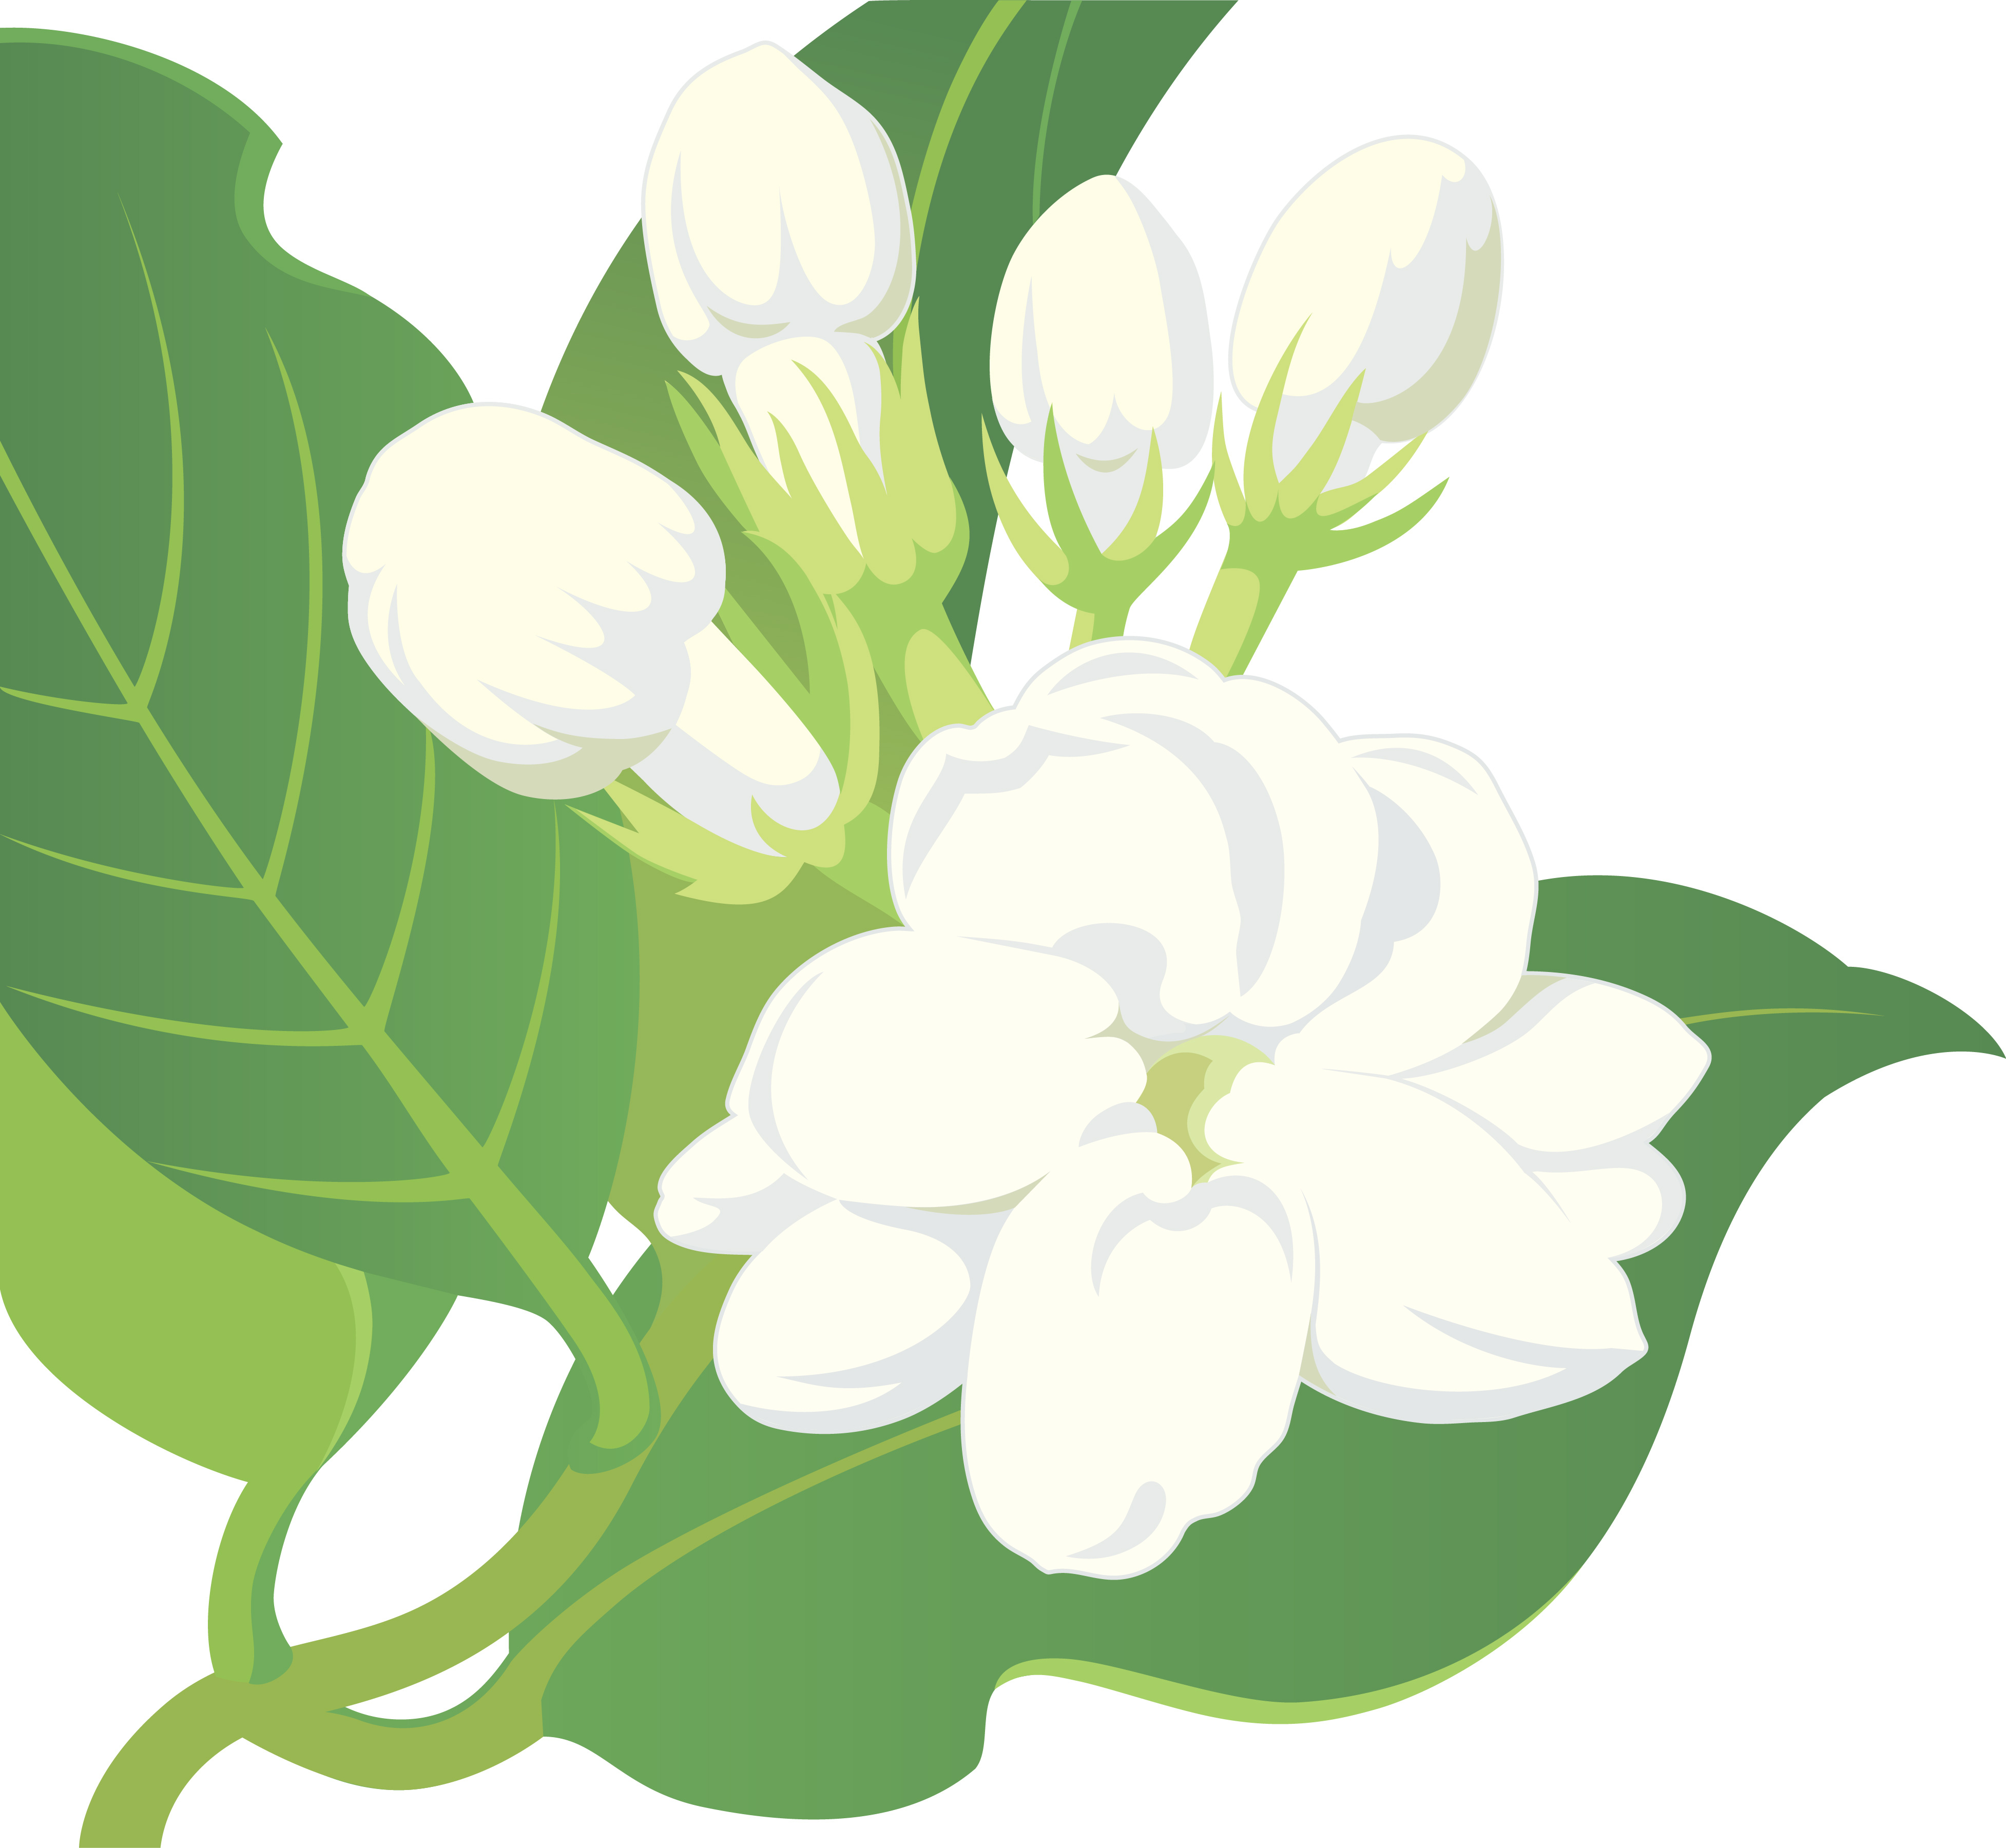 Jasmine drawing flower at getdrawings free for personal use 3908x3601 sampaguita flower drawing jasmine clipart jasmine plant izmirmasajfo